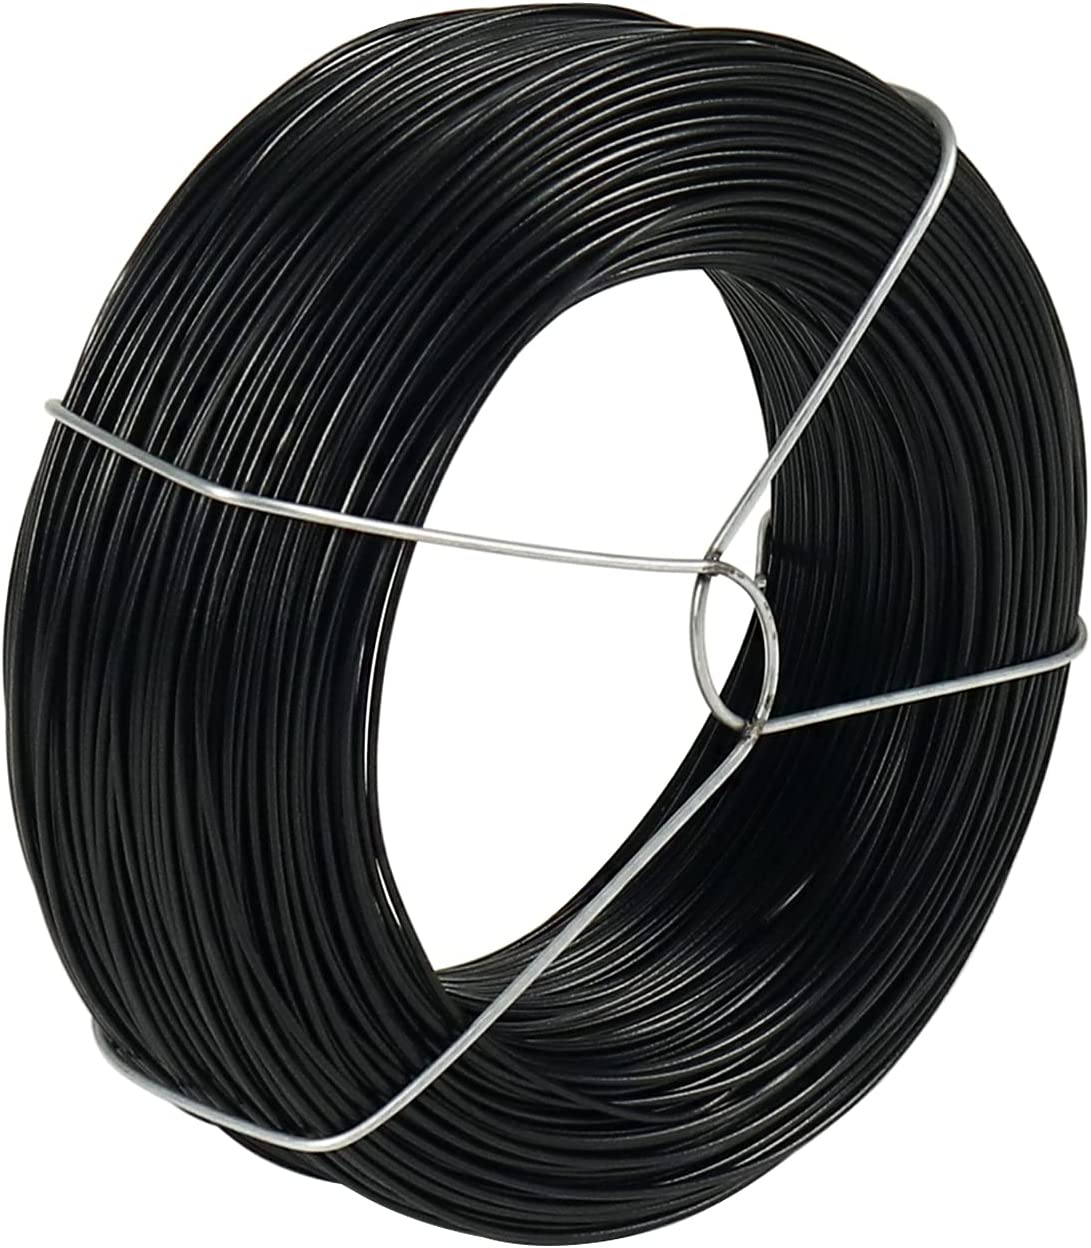 328 Feet Plant Twist Tie Plastic Coated Soft Garden Metal Wire 1mm Thin for Tomato Plants, Climbing Roses and Vines Organizing (Black)